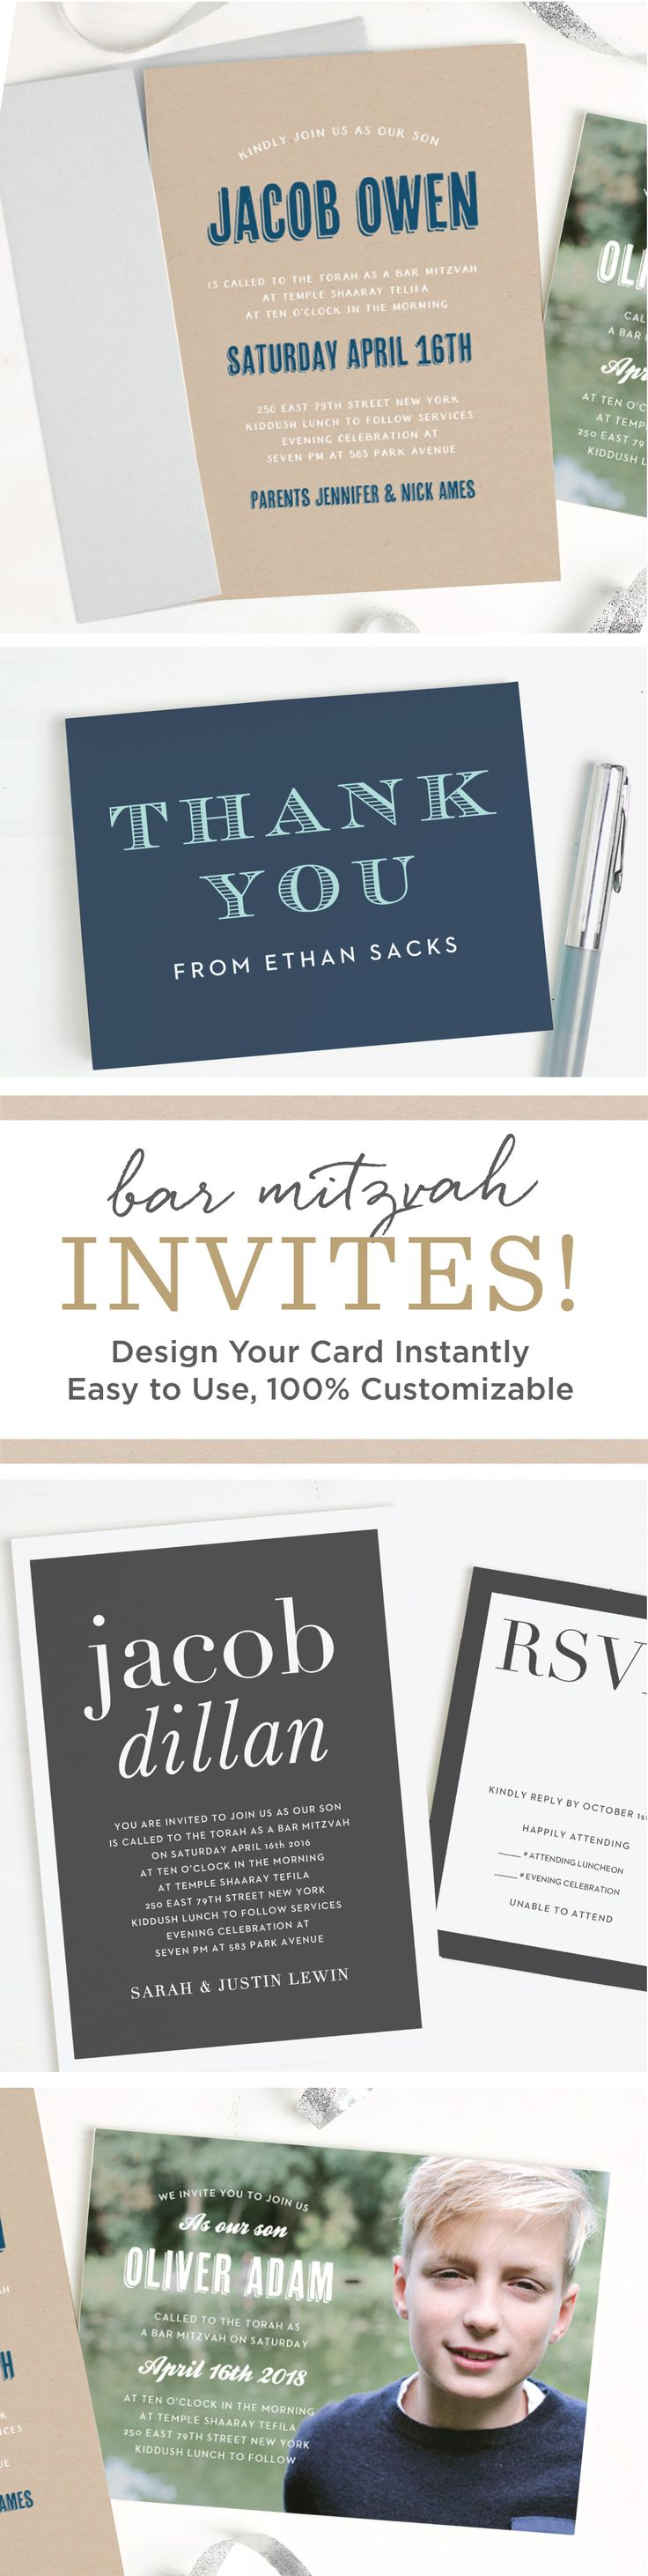 Instantly design personal and quality Bar Mitzvah invitations online with real-time previews of every change. Choose from our wide selection of themes, colors and fonts to show off your sons individual style and personality.